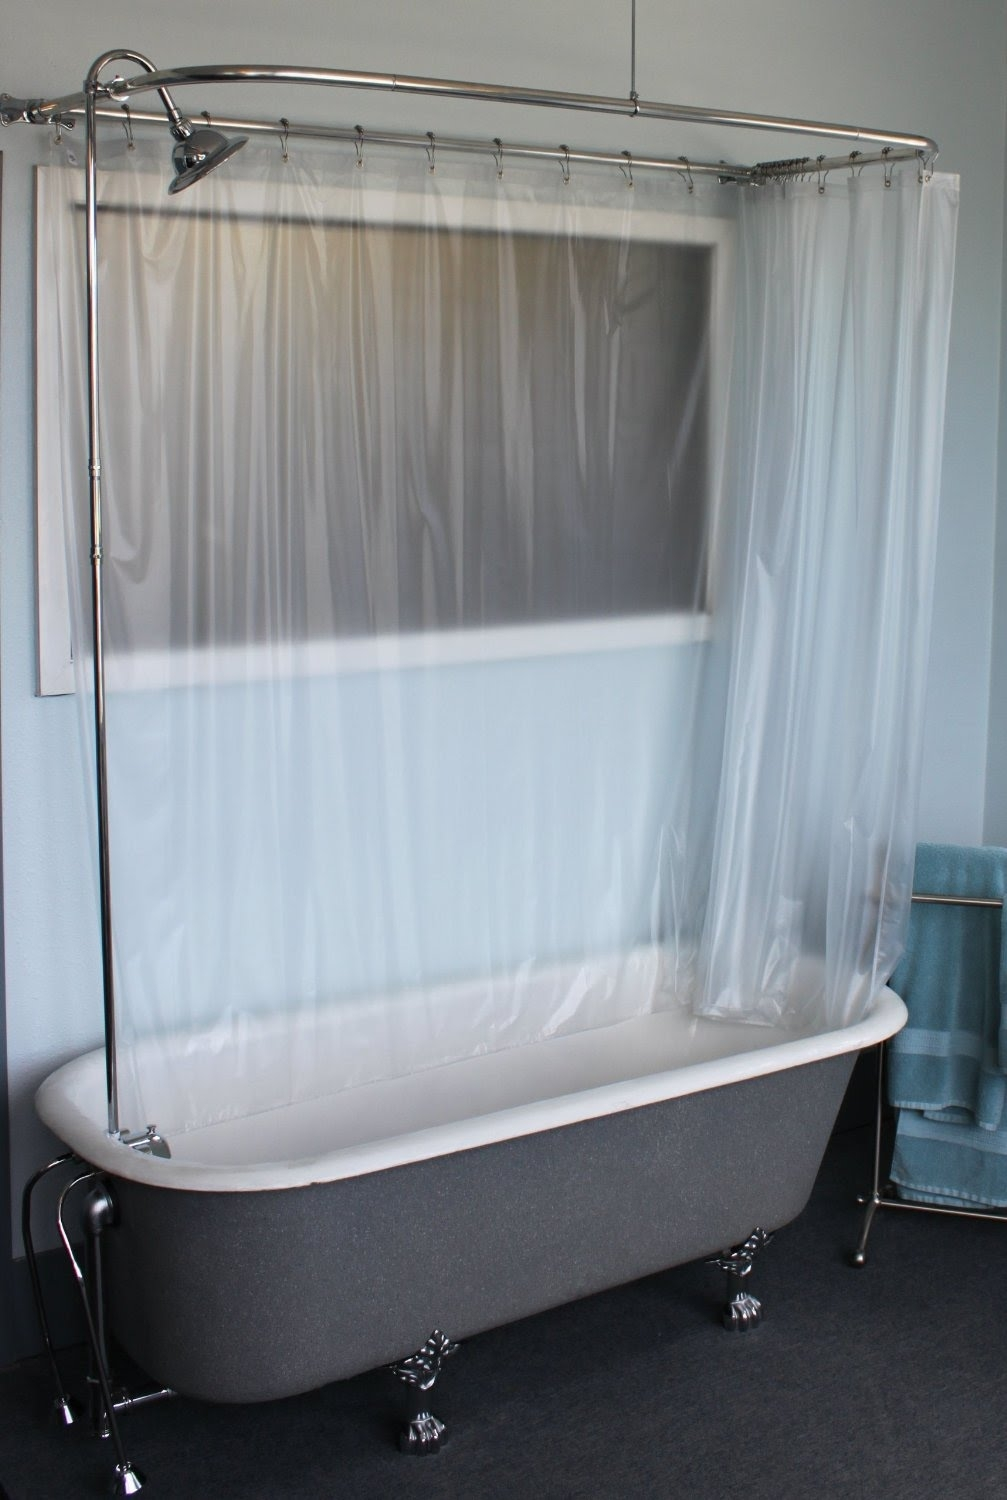 Claw Foot Tub Wall Mounted Shower Curtain Rod Add A Shower With Inside Shower Curtain Wall Mounts (Image 6 of 25)